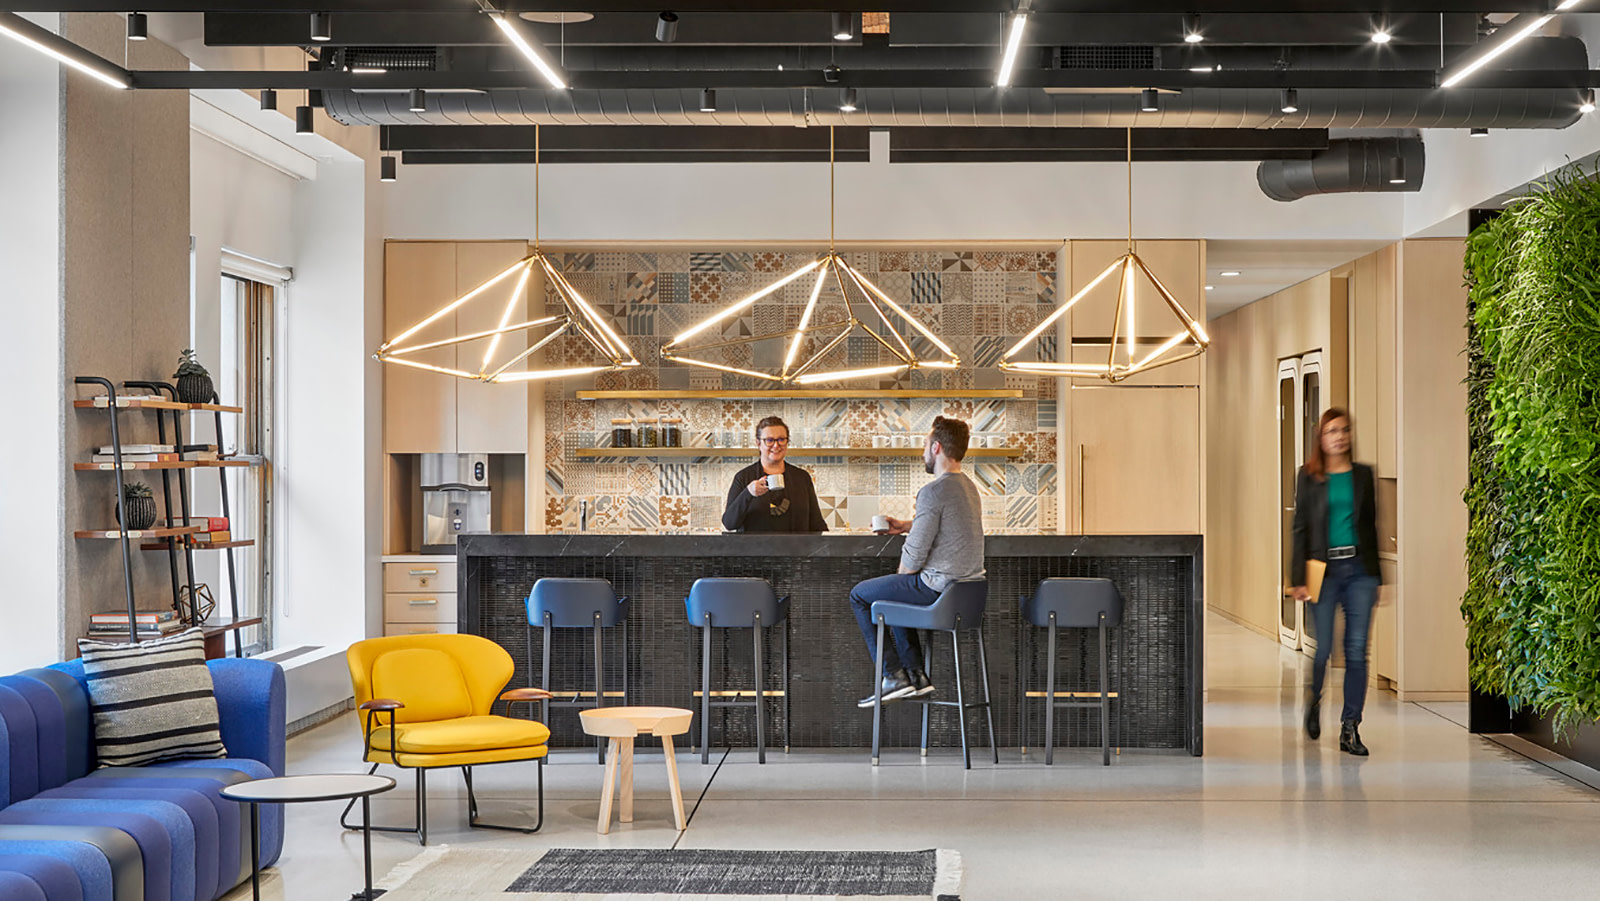 A café space at the offices of a prominent NYC business.